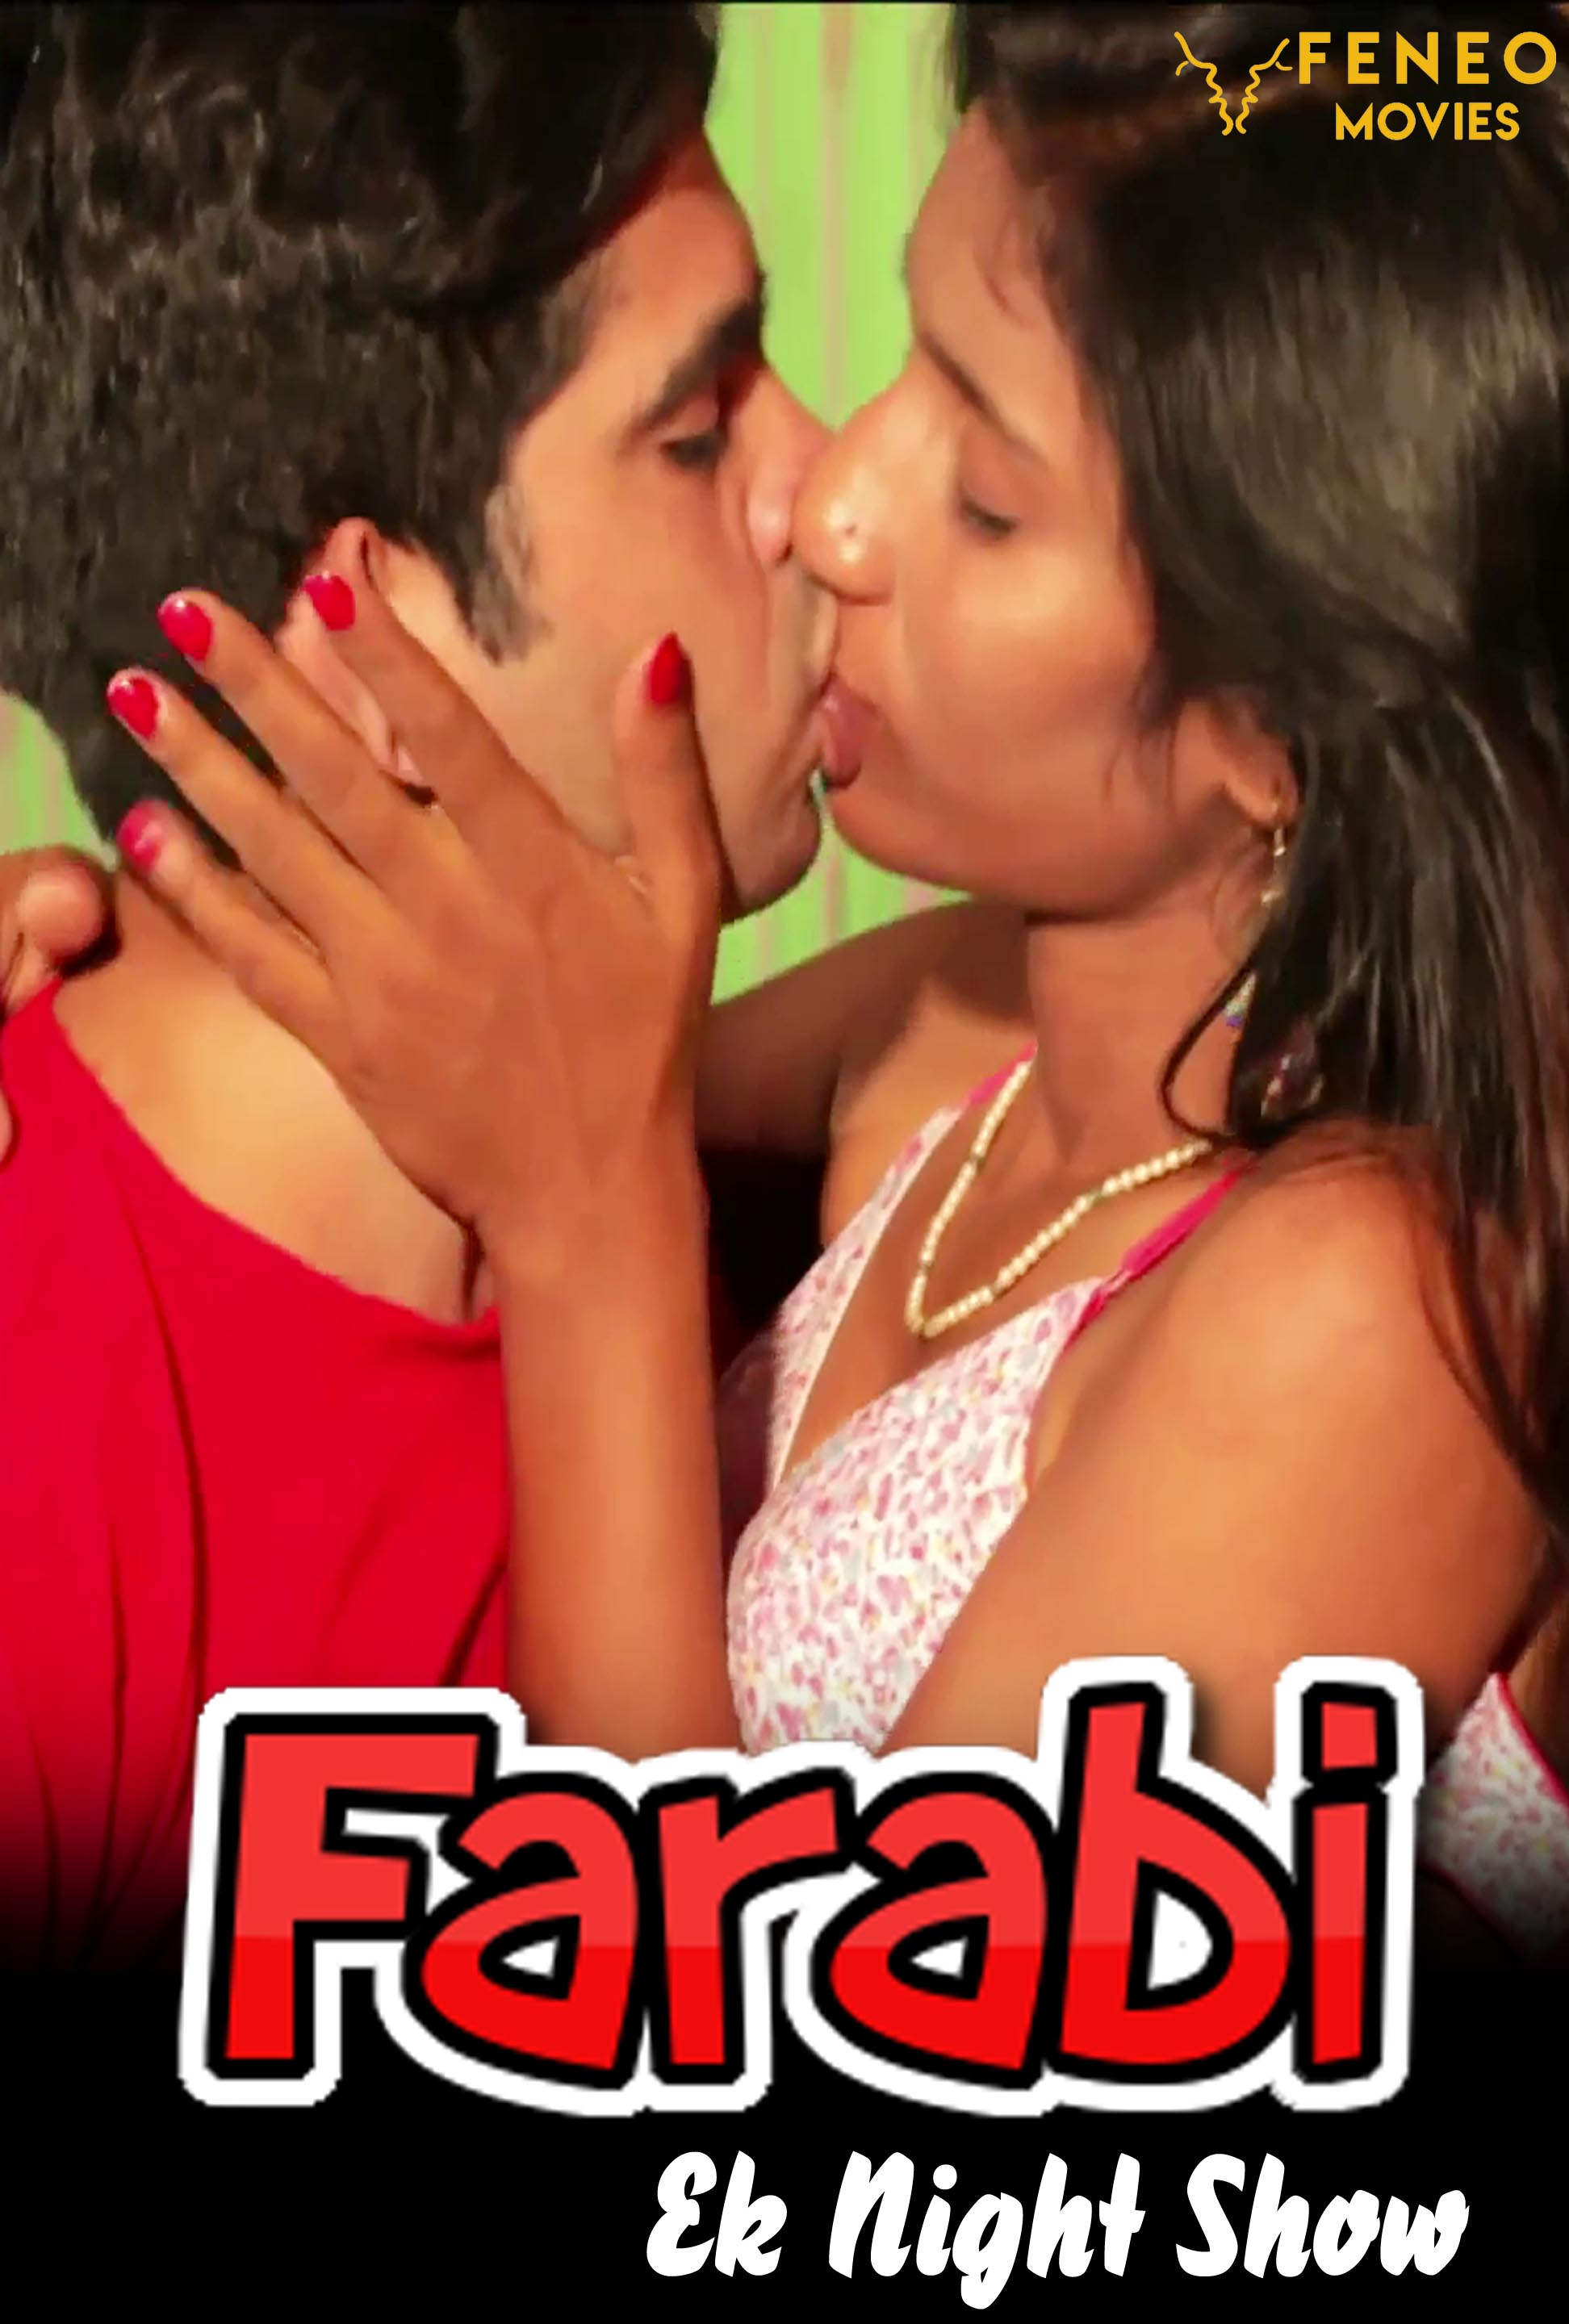 Farabi 2020 Hindi S01E02 Feneomovies Web Series 720p HDRip 150MB Download